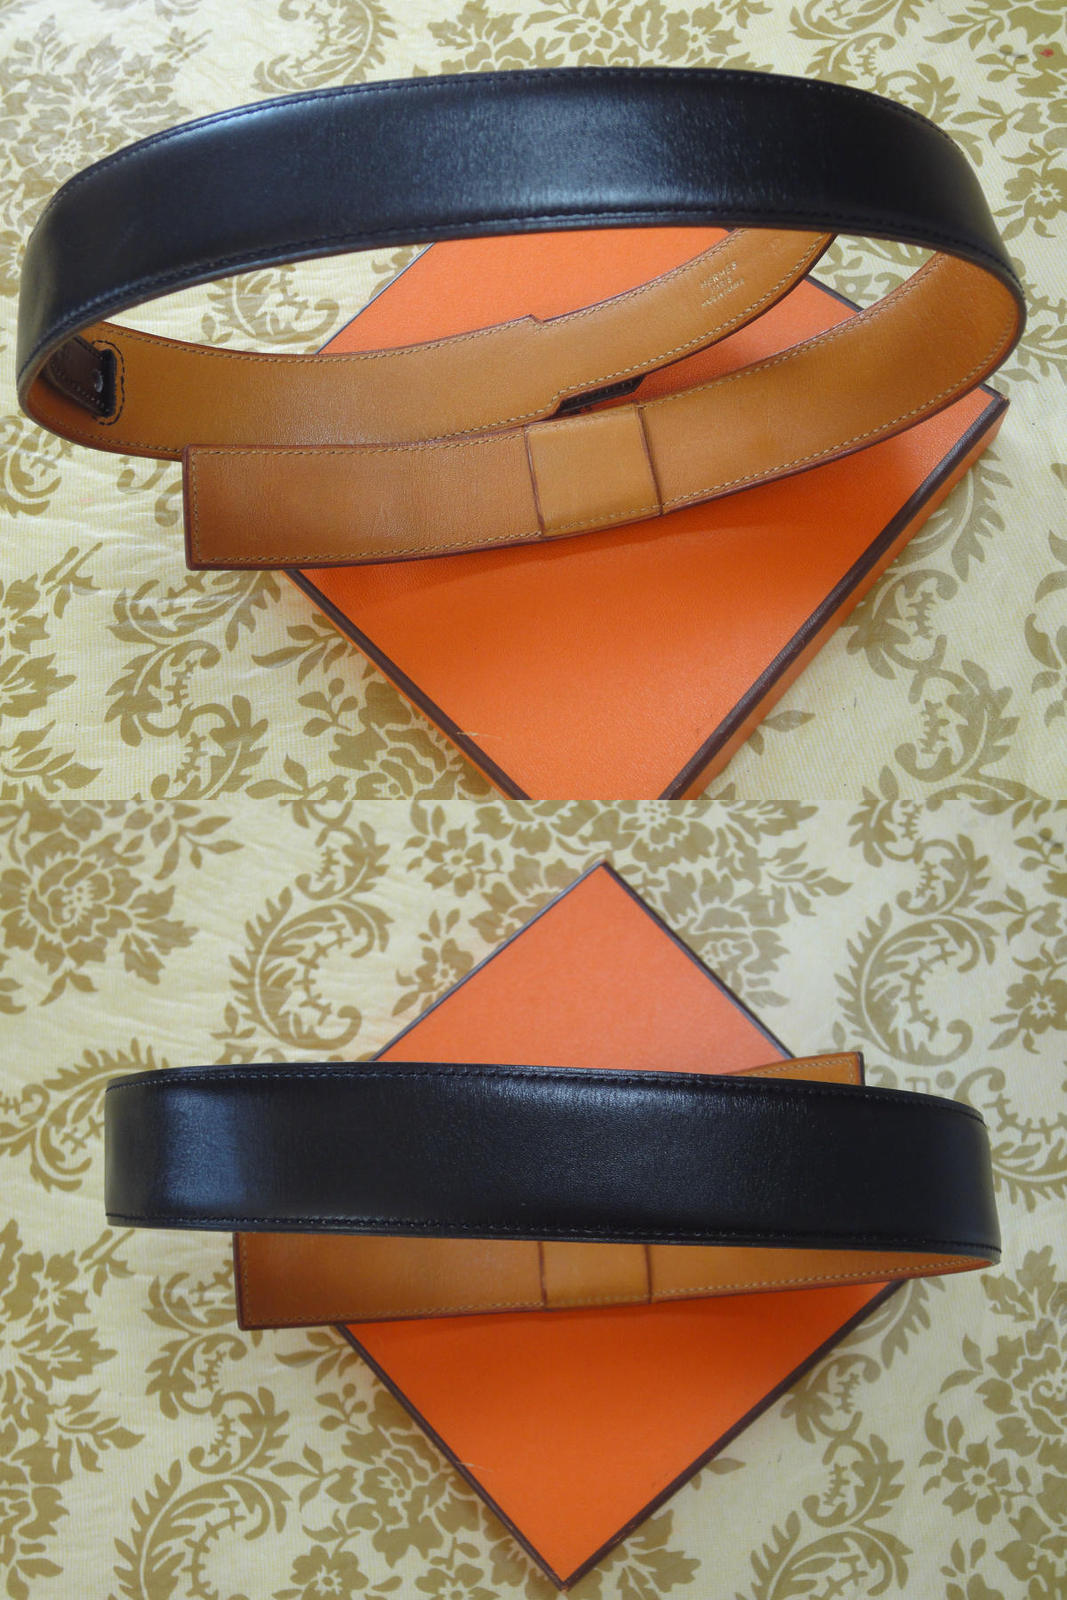 MINT. Vintage HERMES black box calf leather Kelly belt. Stamp S in O, 1989. size